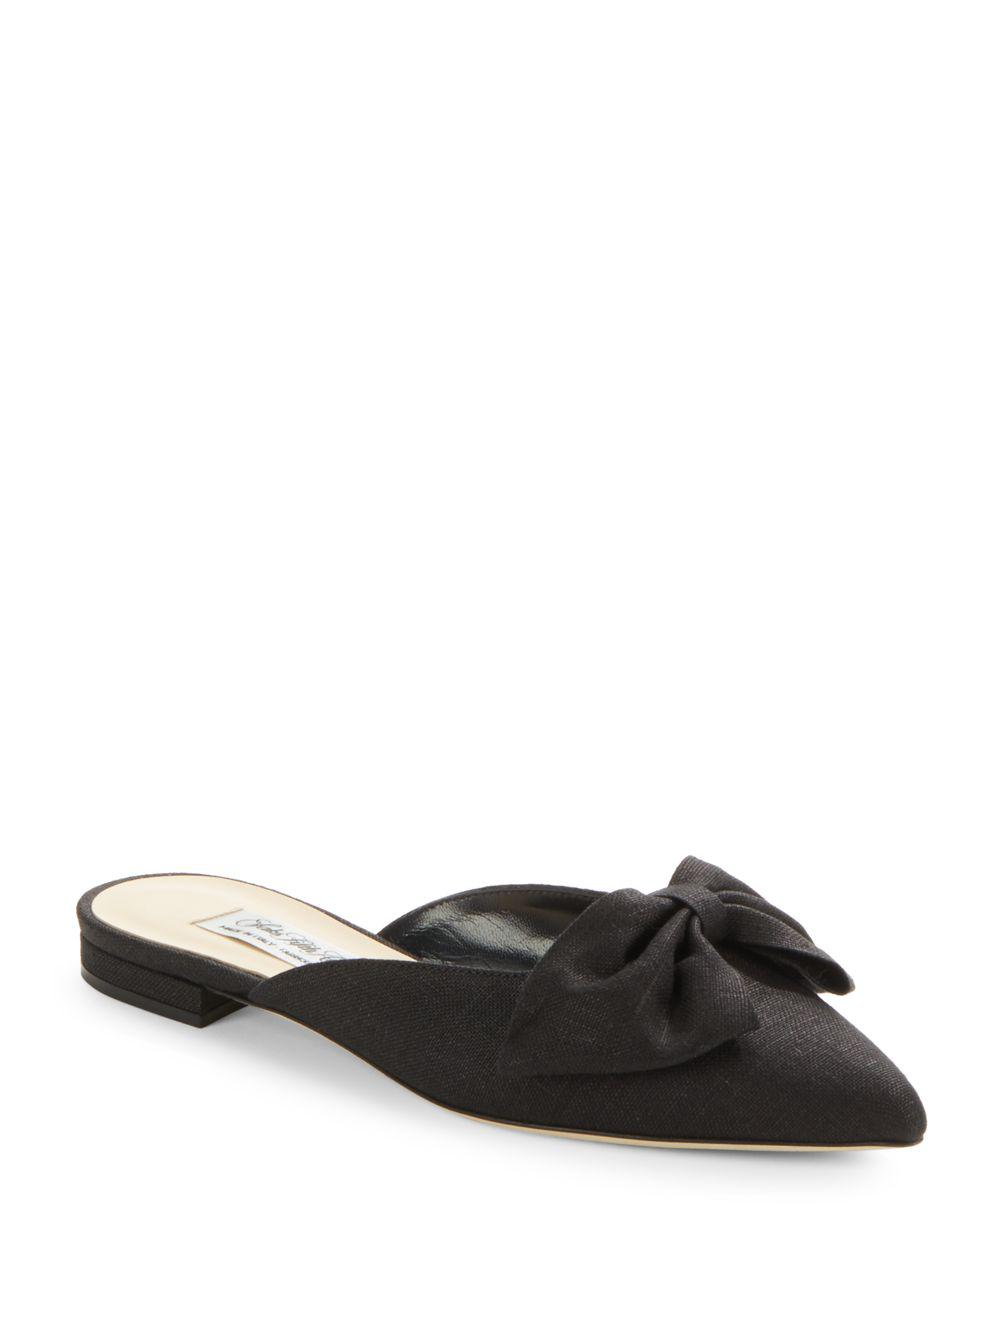 Saks Fifth Avenue Patent Leather Pointed-Toe Loafers best place cheap online sale discount discount fast delivery cheap official site outlet new arrival fTqE7hW5xw